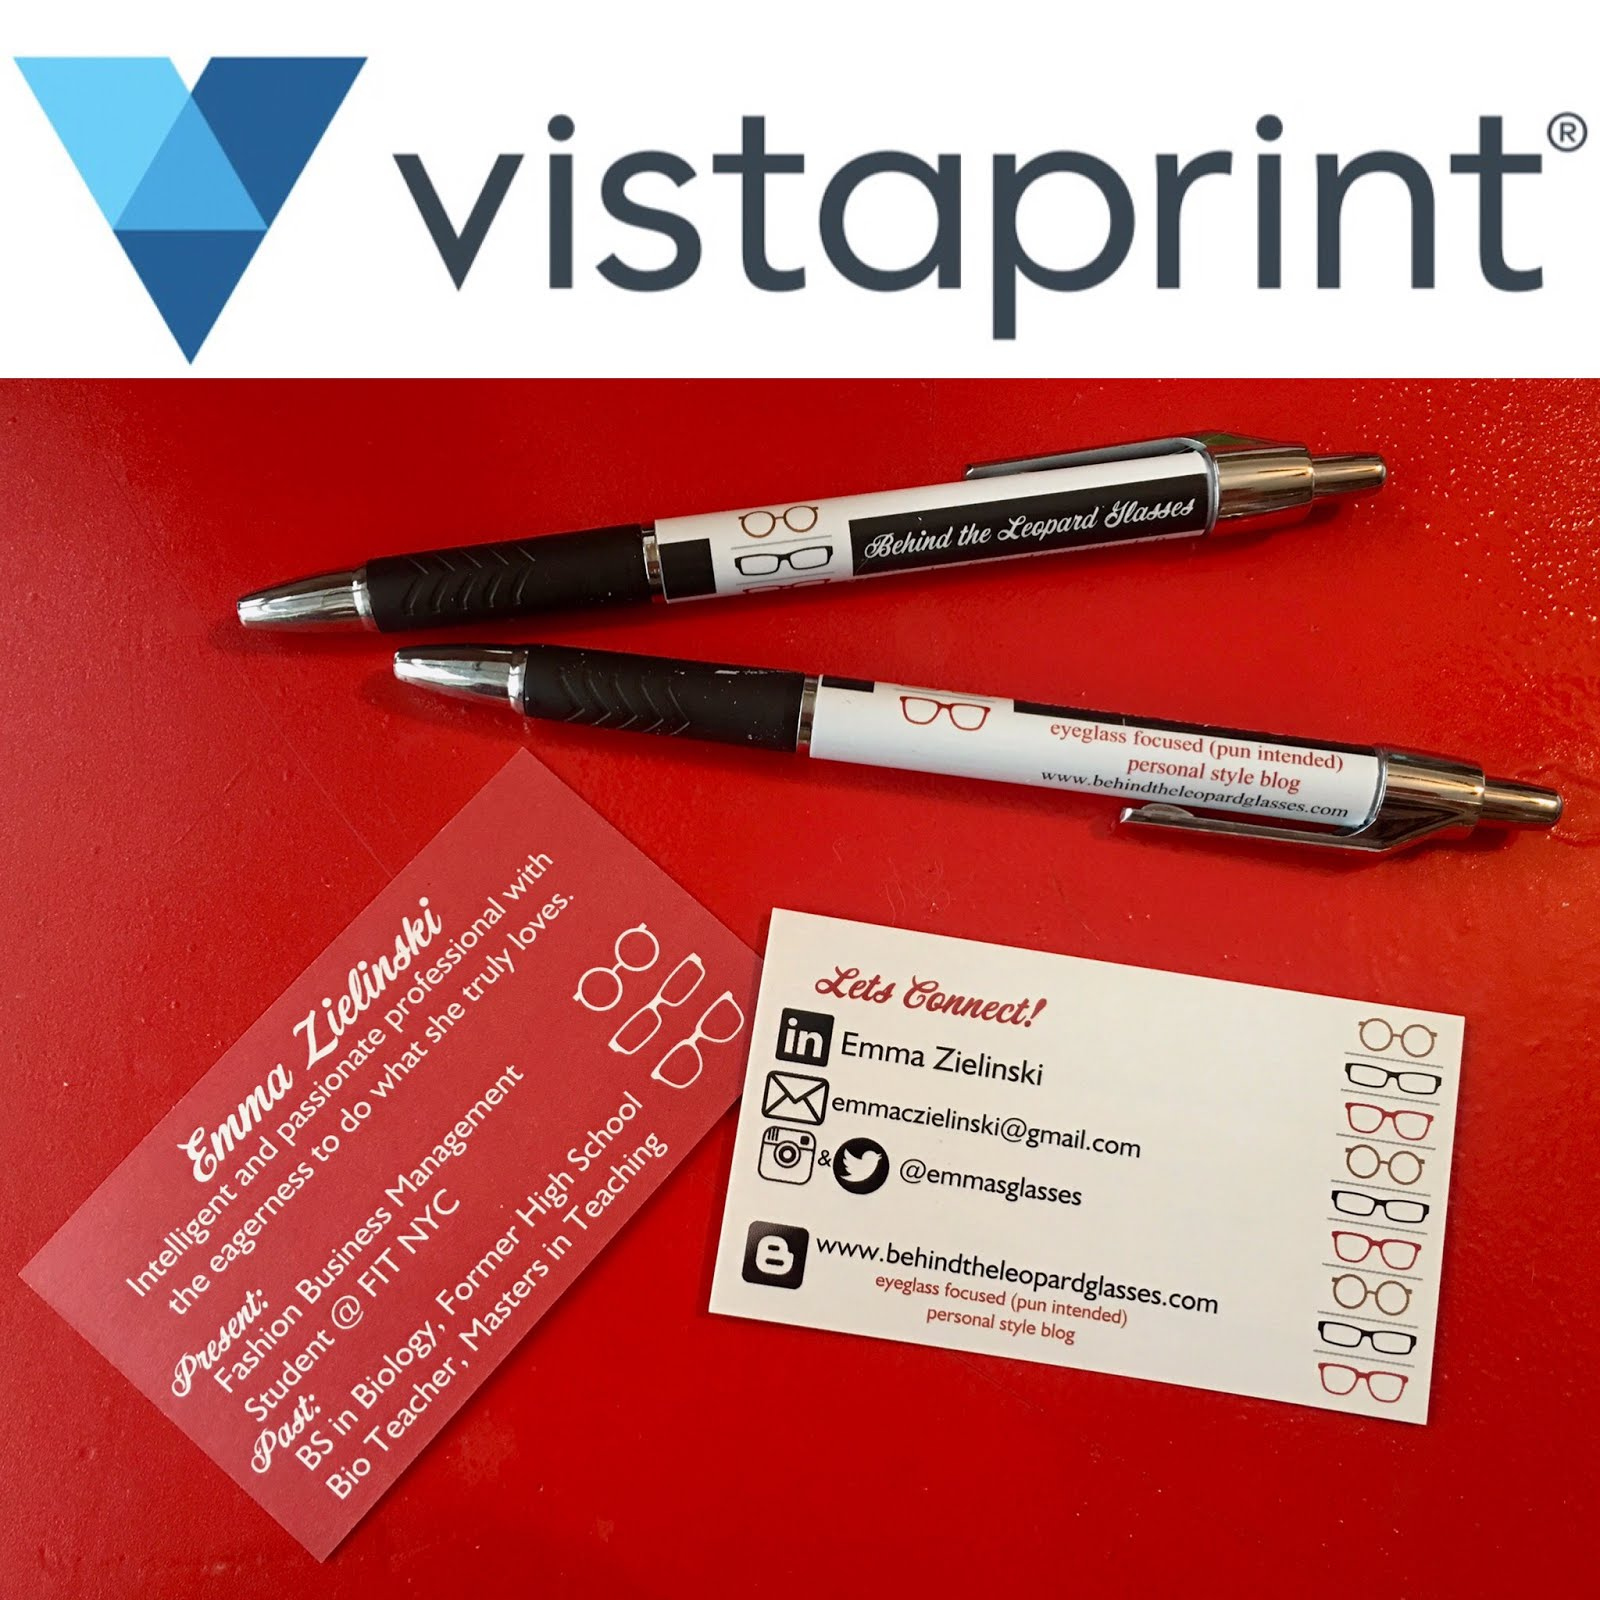 Business cards & merch from vistaprint